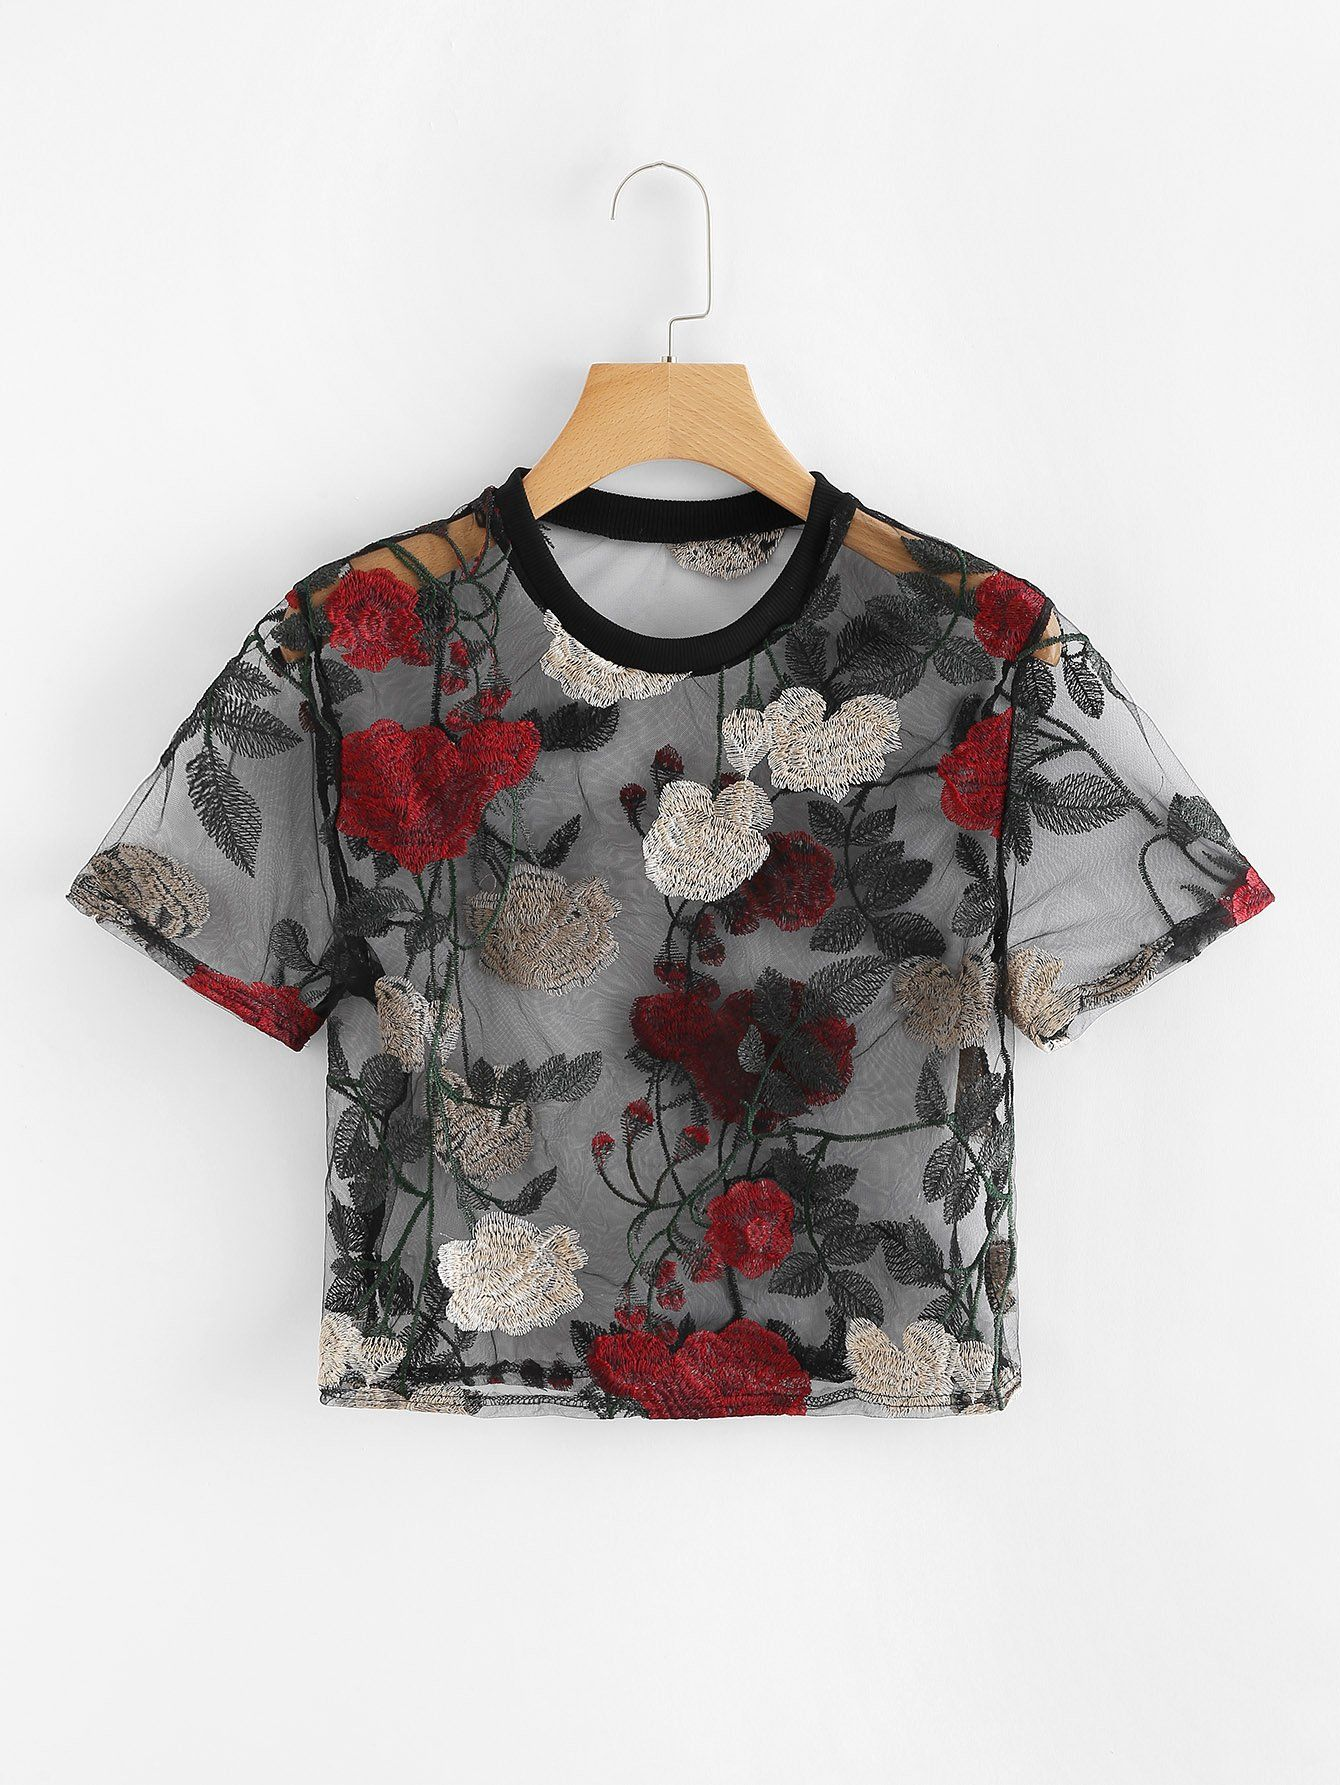 30ce8b6ca2967 Sheer Mesh Floral Embroidered Crop TopFor Women-romwe